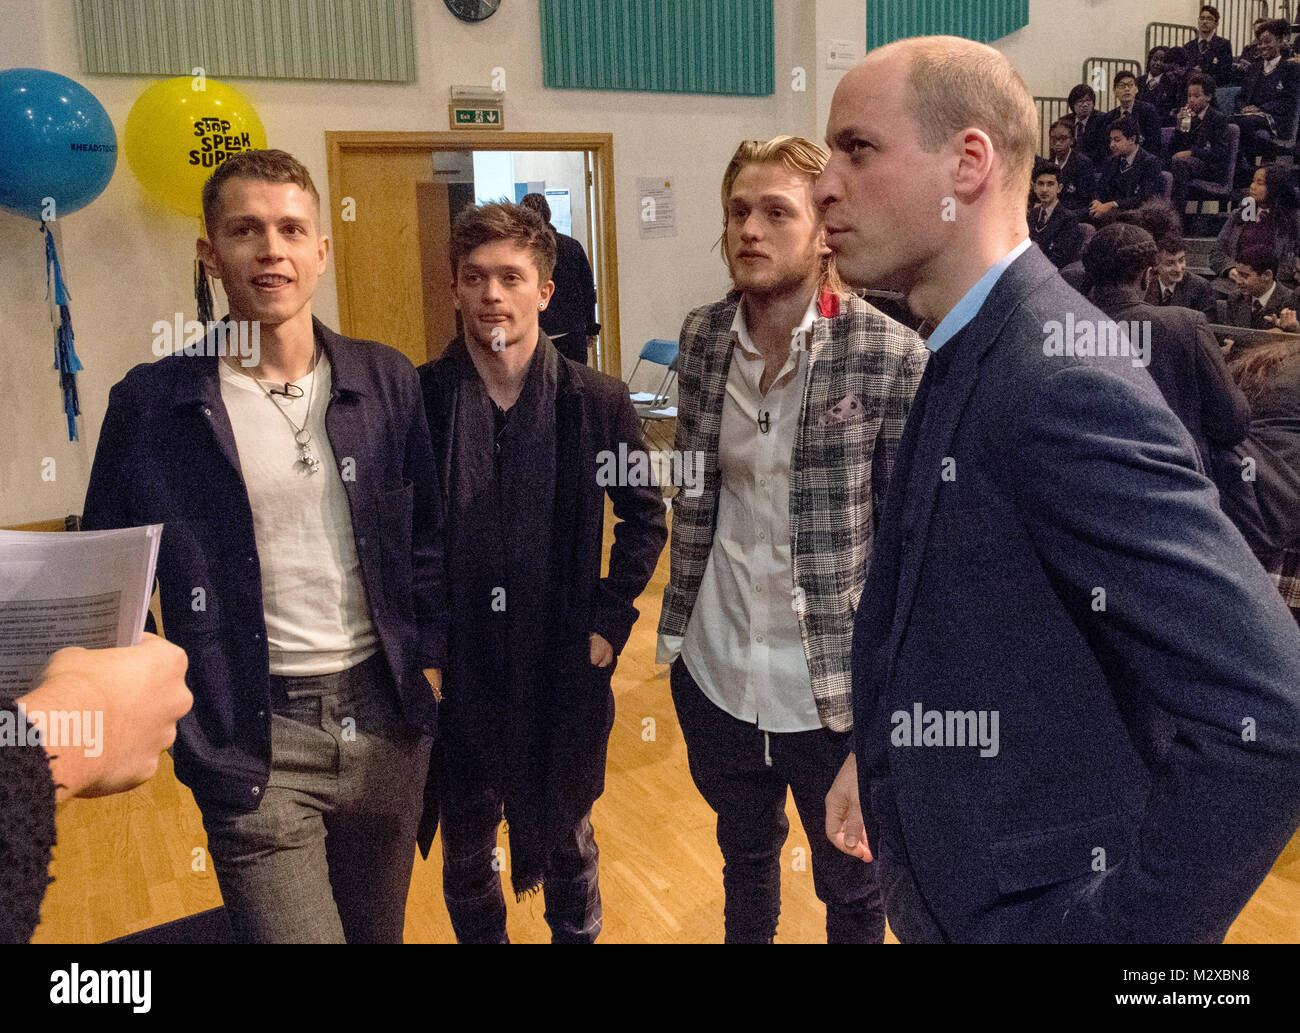 The Duke of Cambridge with The Vamps band members as he makes an unannounced visit to Burlington Danes Academy in - Stock Image